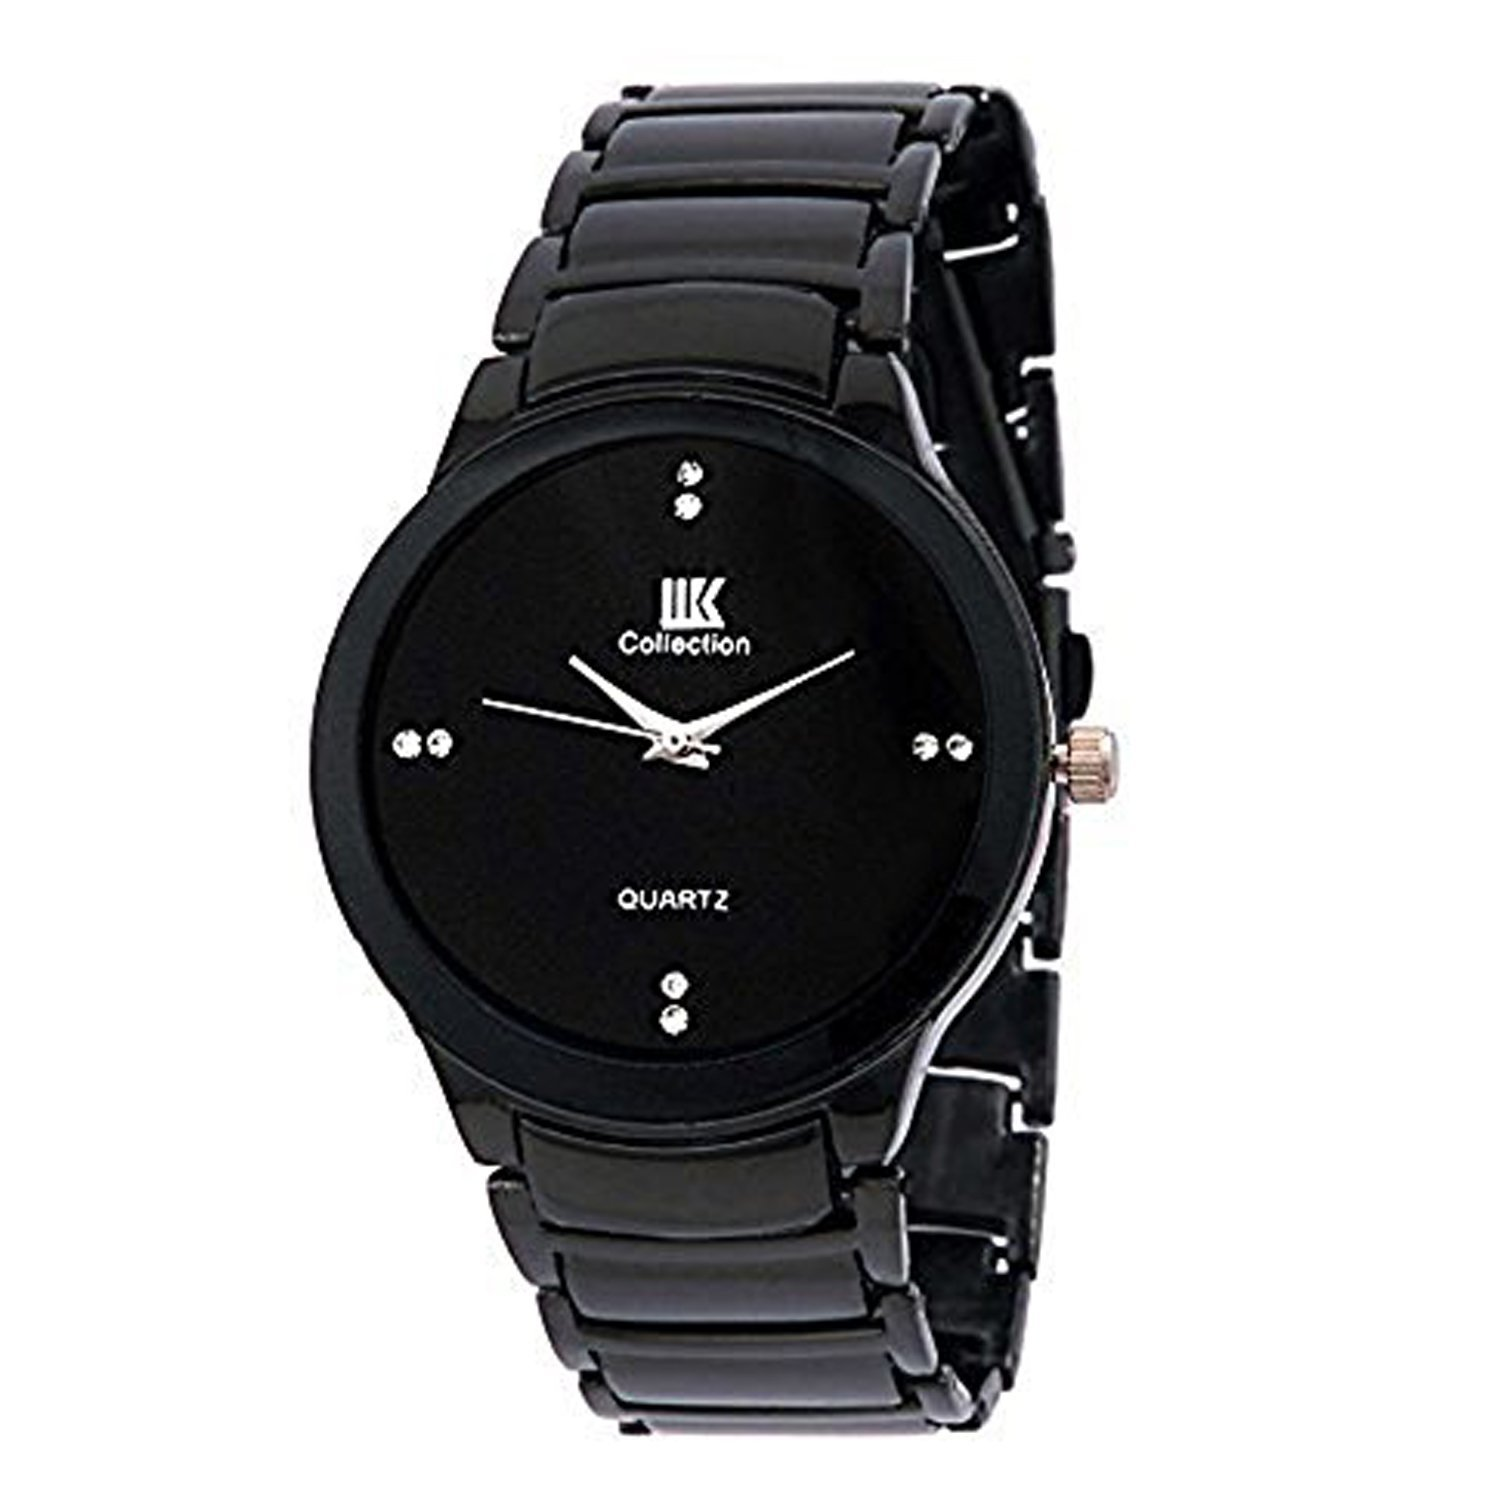 Mens Watch IIK Collection Black Analog Casual Watch for Men